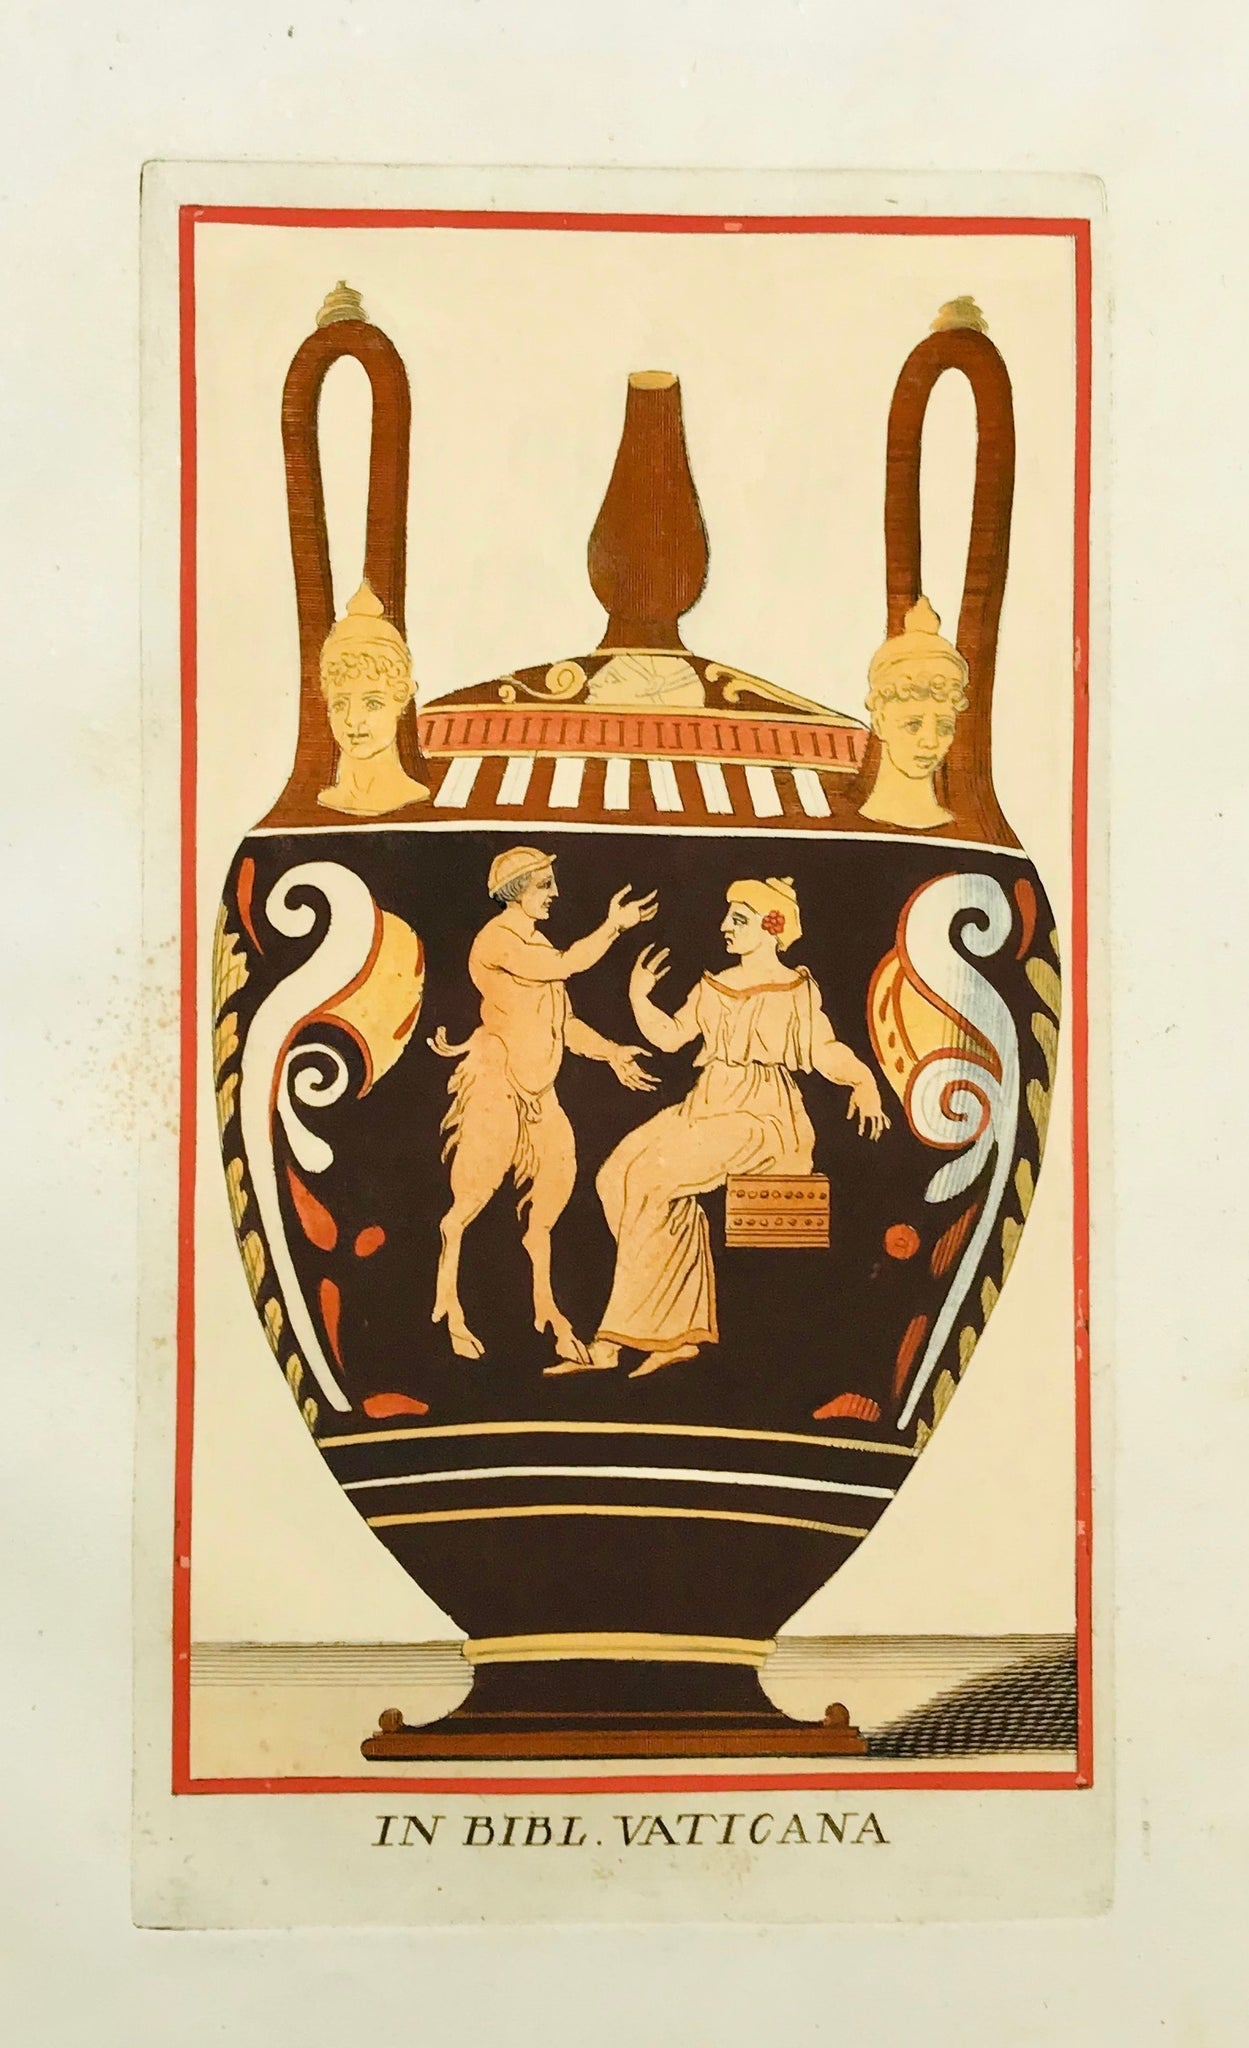 """In Bibl. Vaticana""  Image size: 26.2 x 15.2 cm (10.3 x 6"") Wide margins.  ETRUSCAN VASES  in fine modern hand coloring from  ""PICTURAE ETRUSCORUM IN VASCULIS  nunc primum in unum collectae  explicationibus, et dissertationibus illustratae  a Joh. Baptista Passerio Nob. Pisaur.  This collection was published in Rome in the years 1767 - 1775"